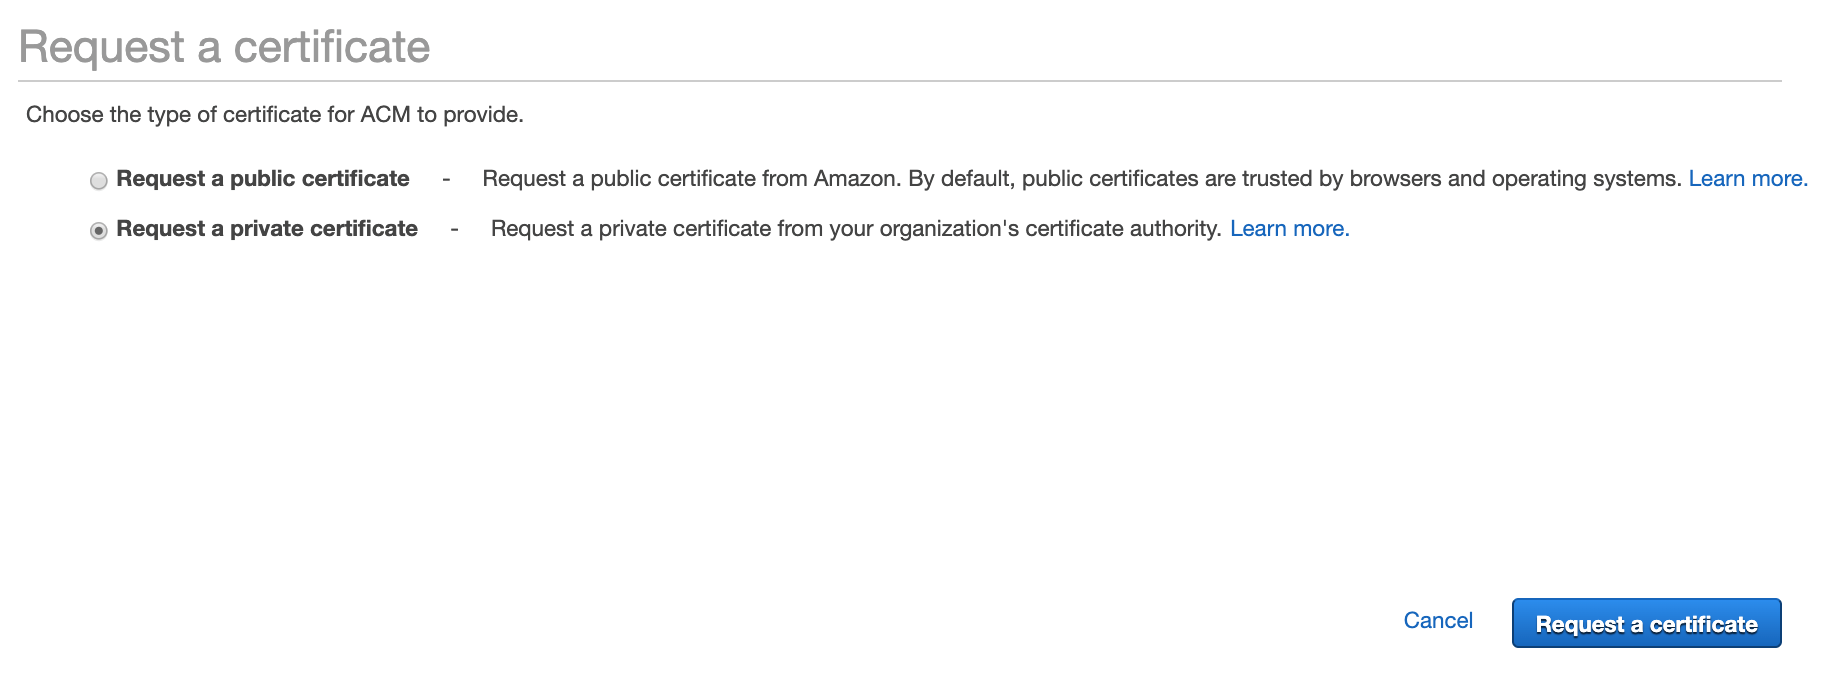 Figure 3: Request a certificate page